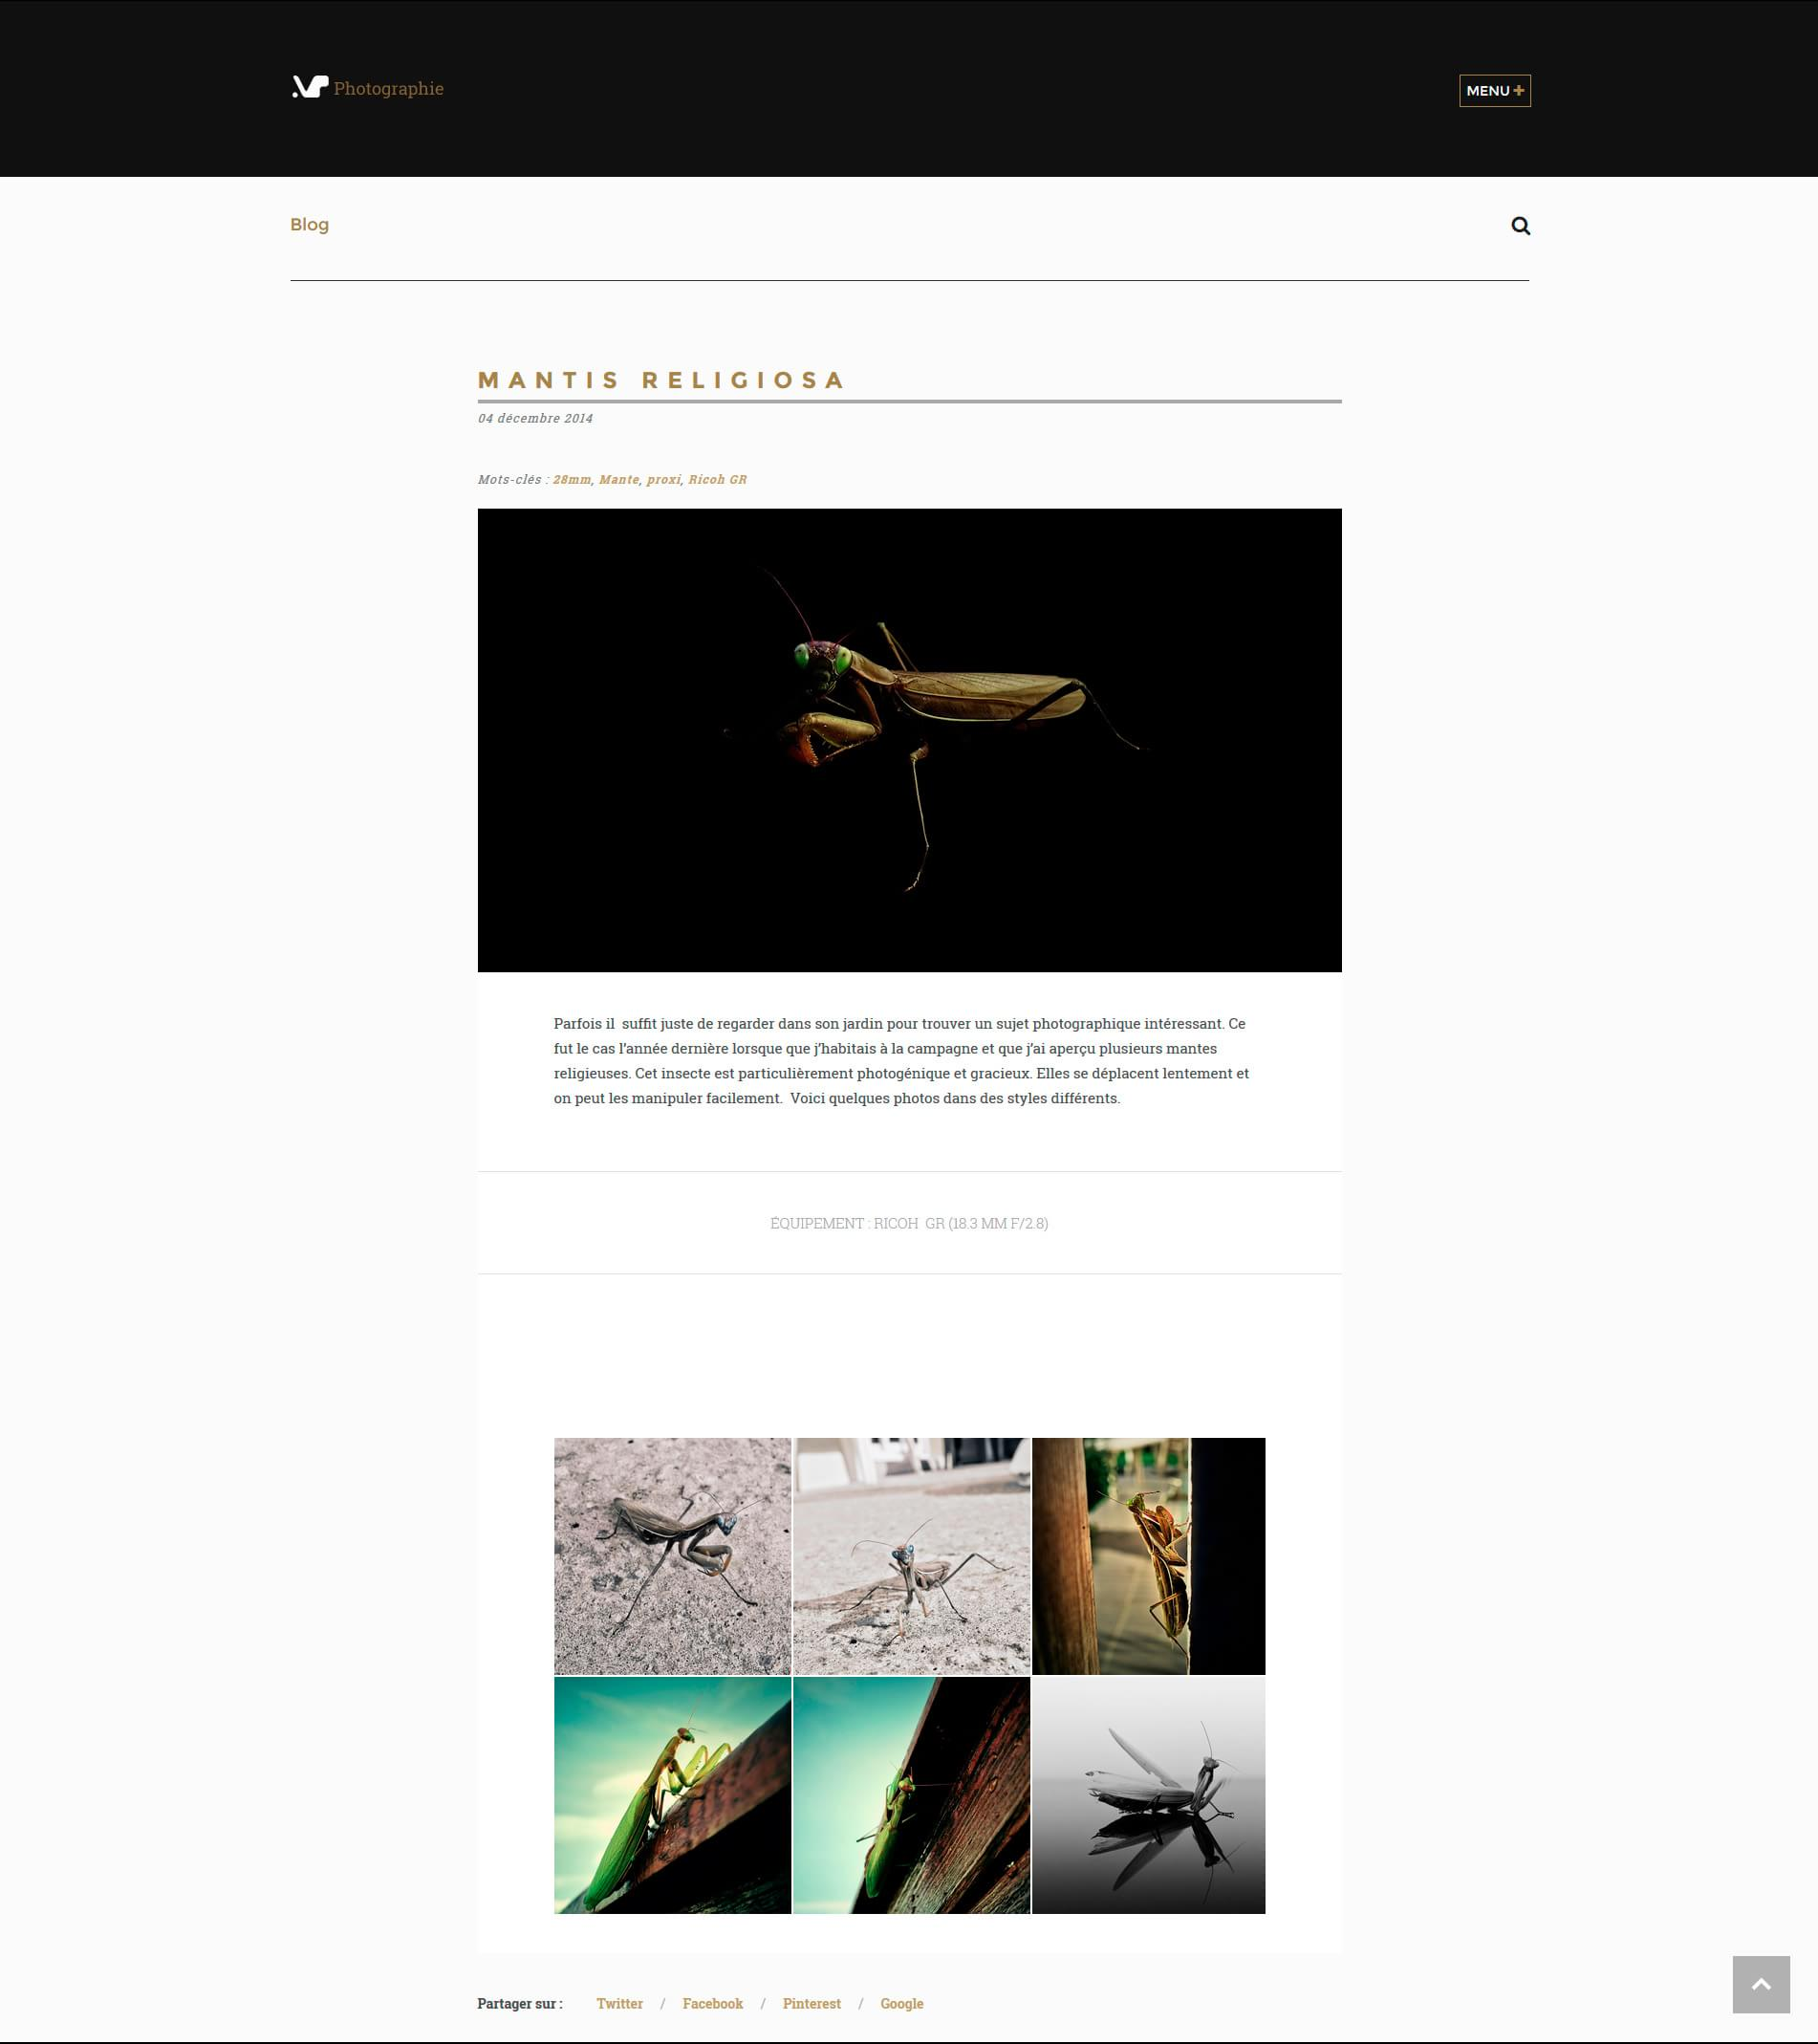 vp-photographie, page blog (article)